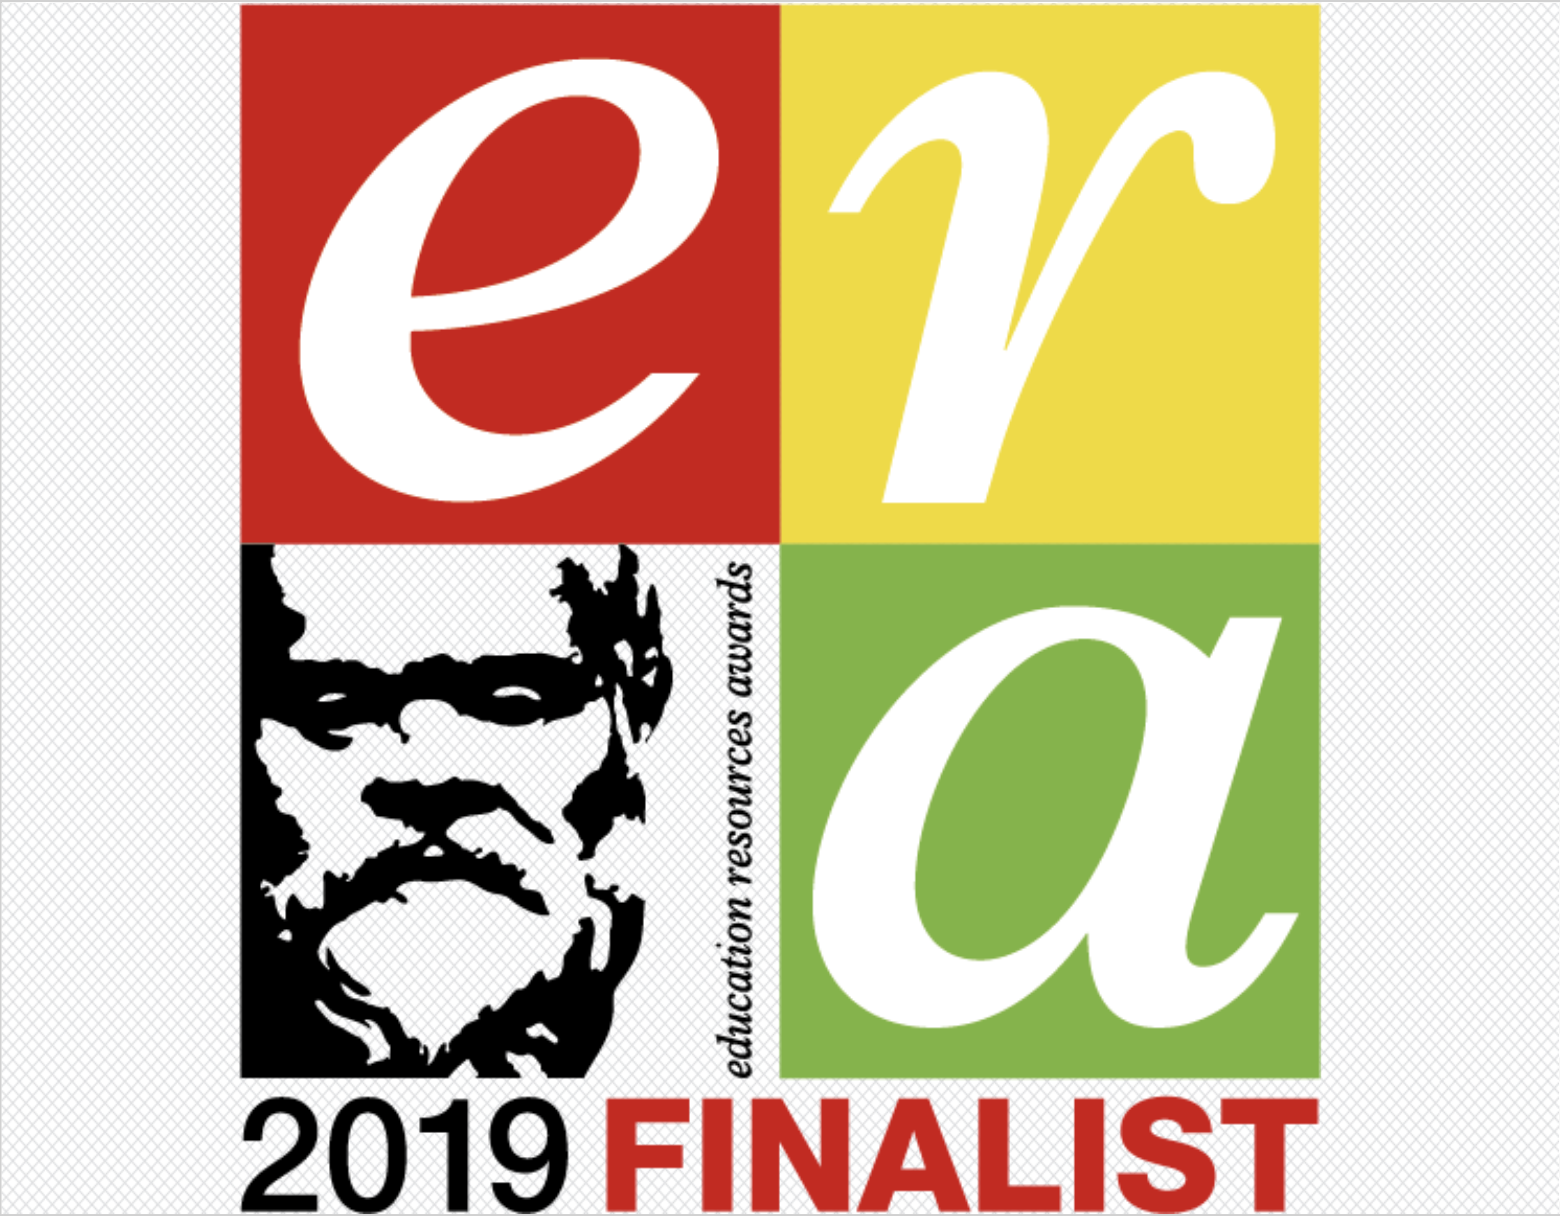 Titus Learning shortlisted for two ERA awards in 2019